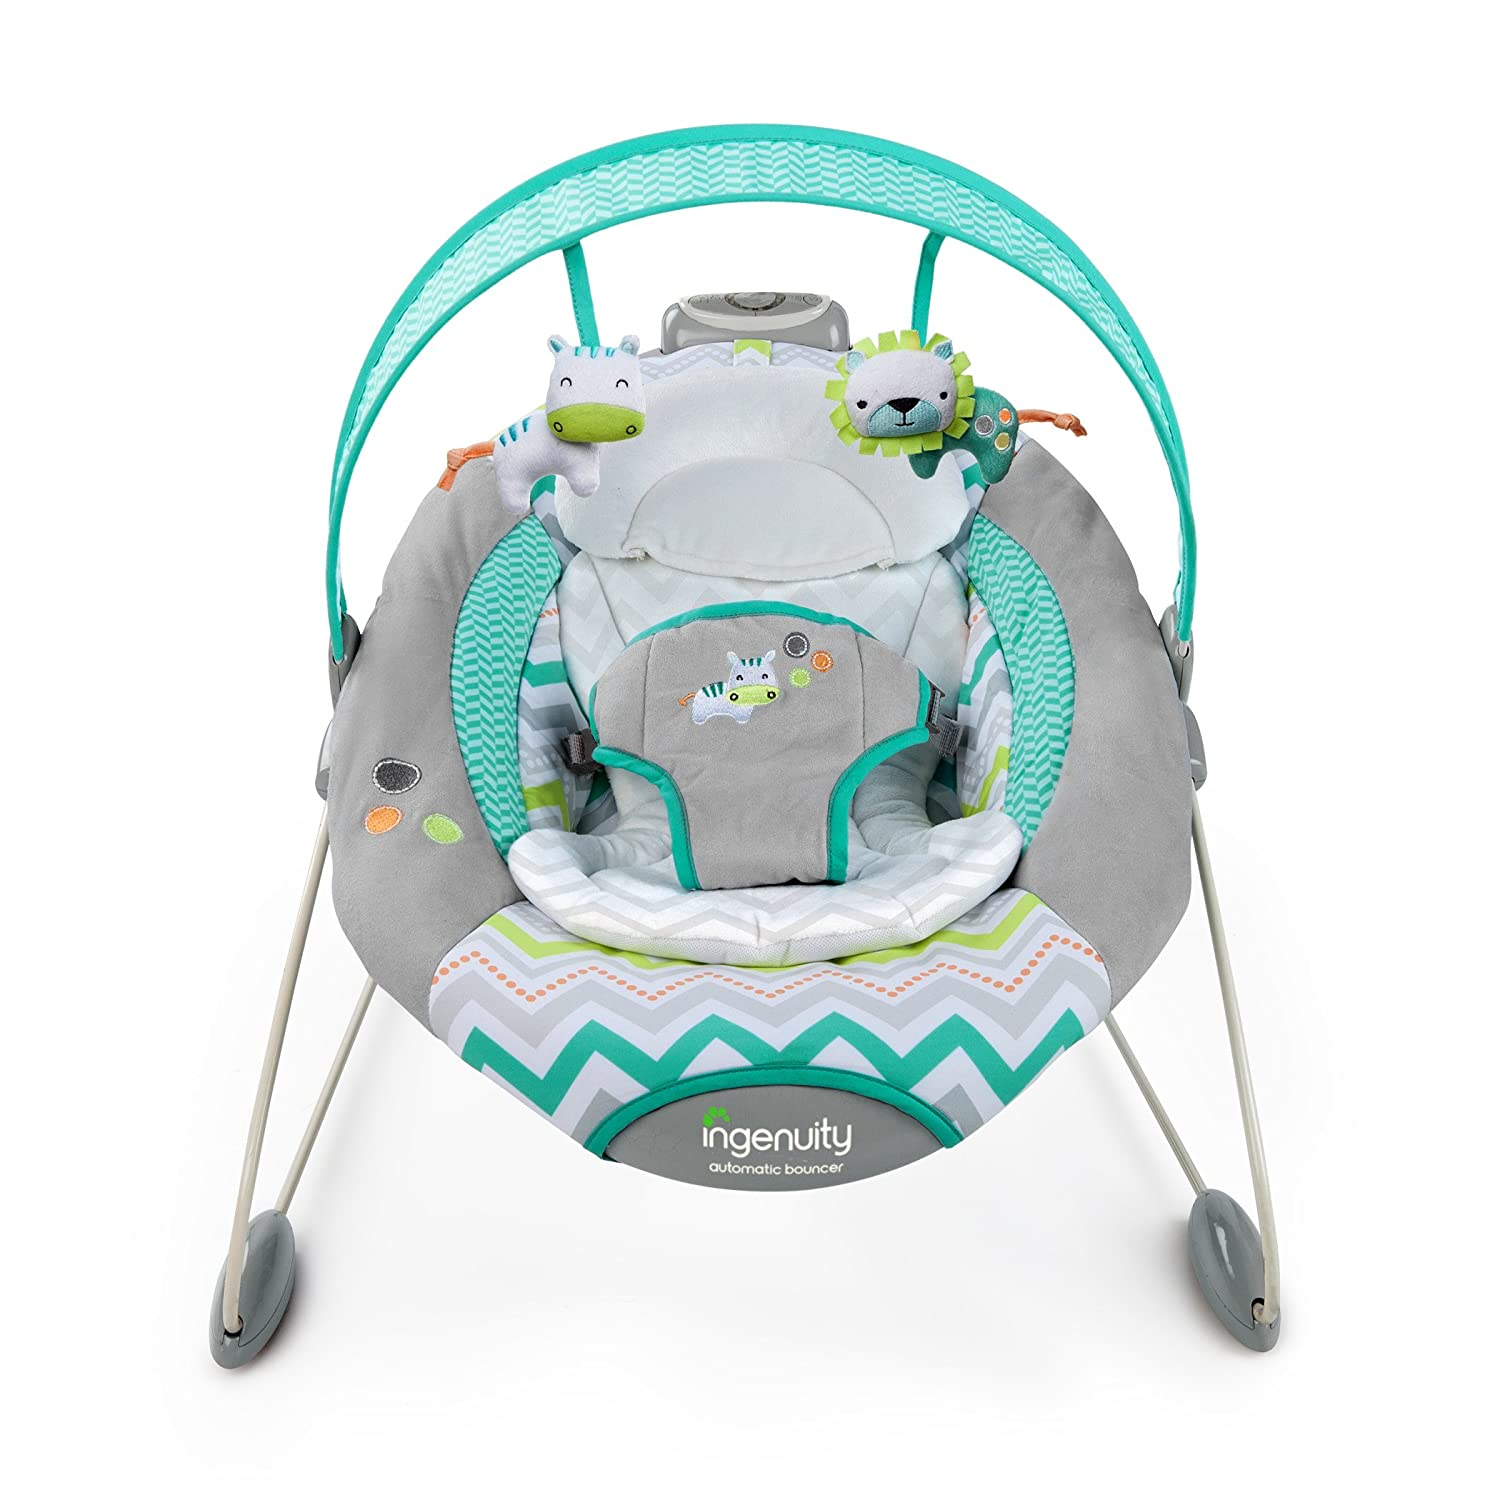 Ingenuity 10209 SmartBounce Automatic Bouncer - Ridgedale